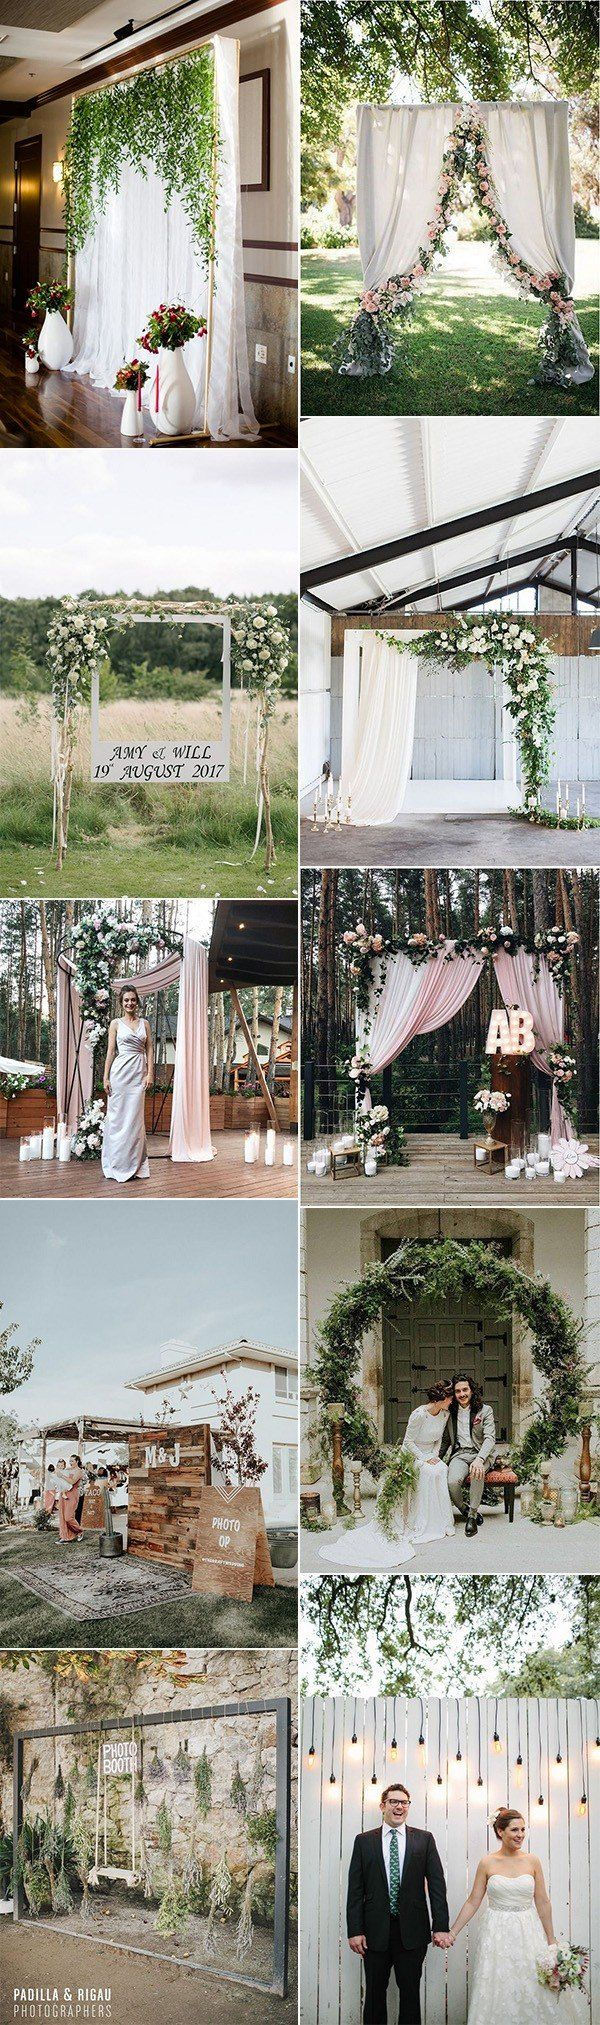 Stunning Wedding Photo Booth Backdrop Ideas in   Enchanted